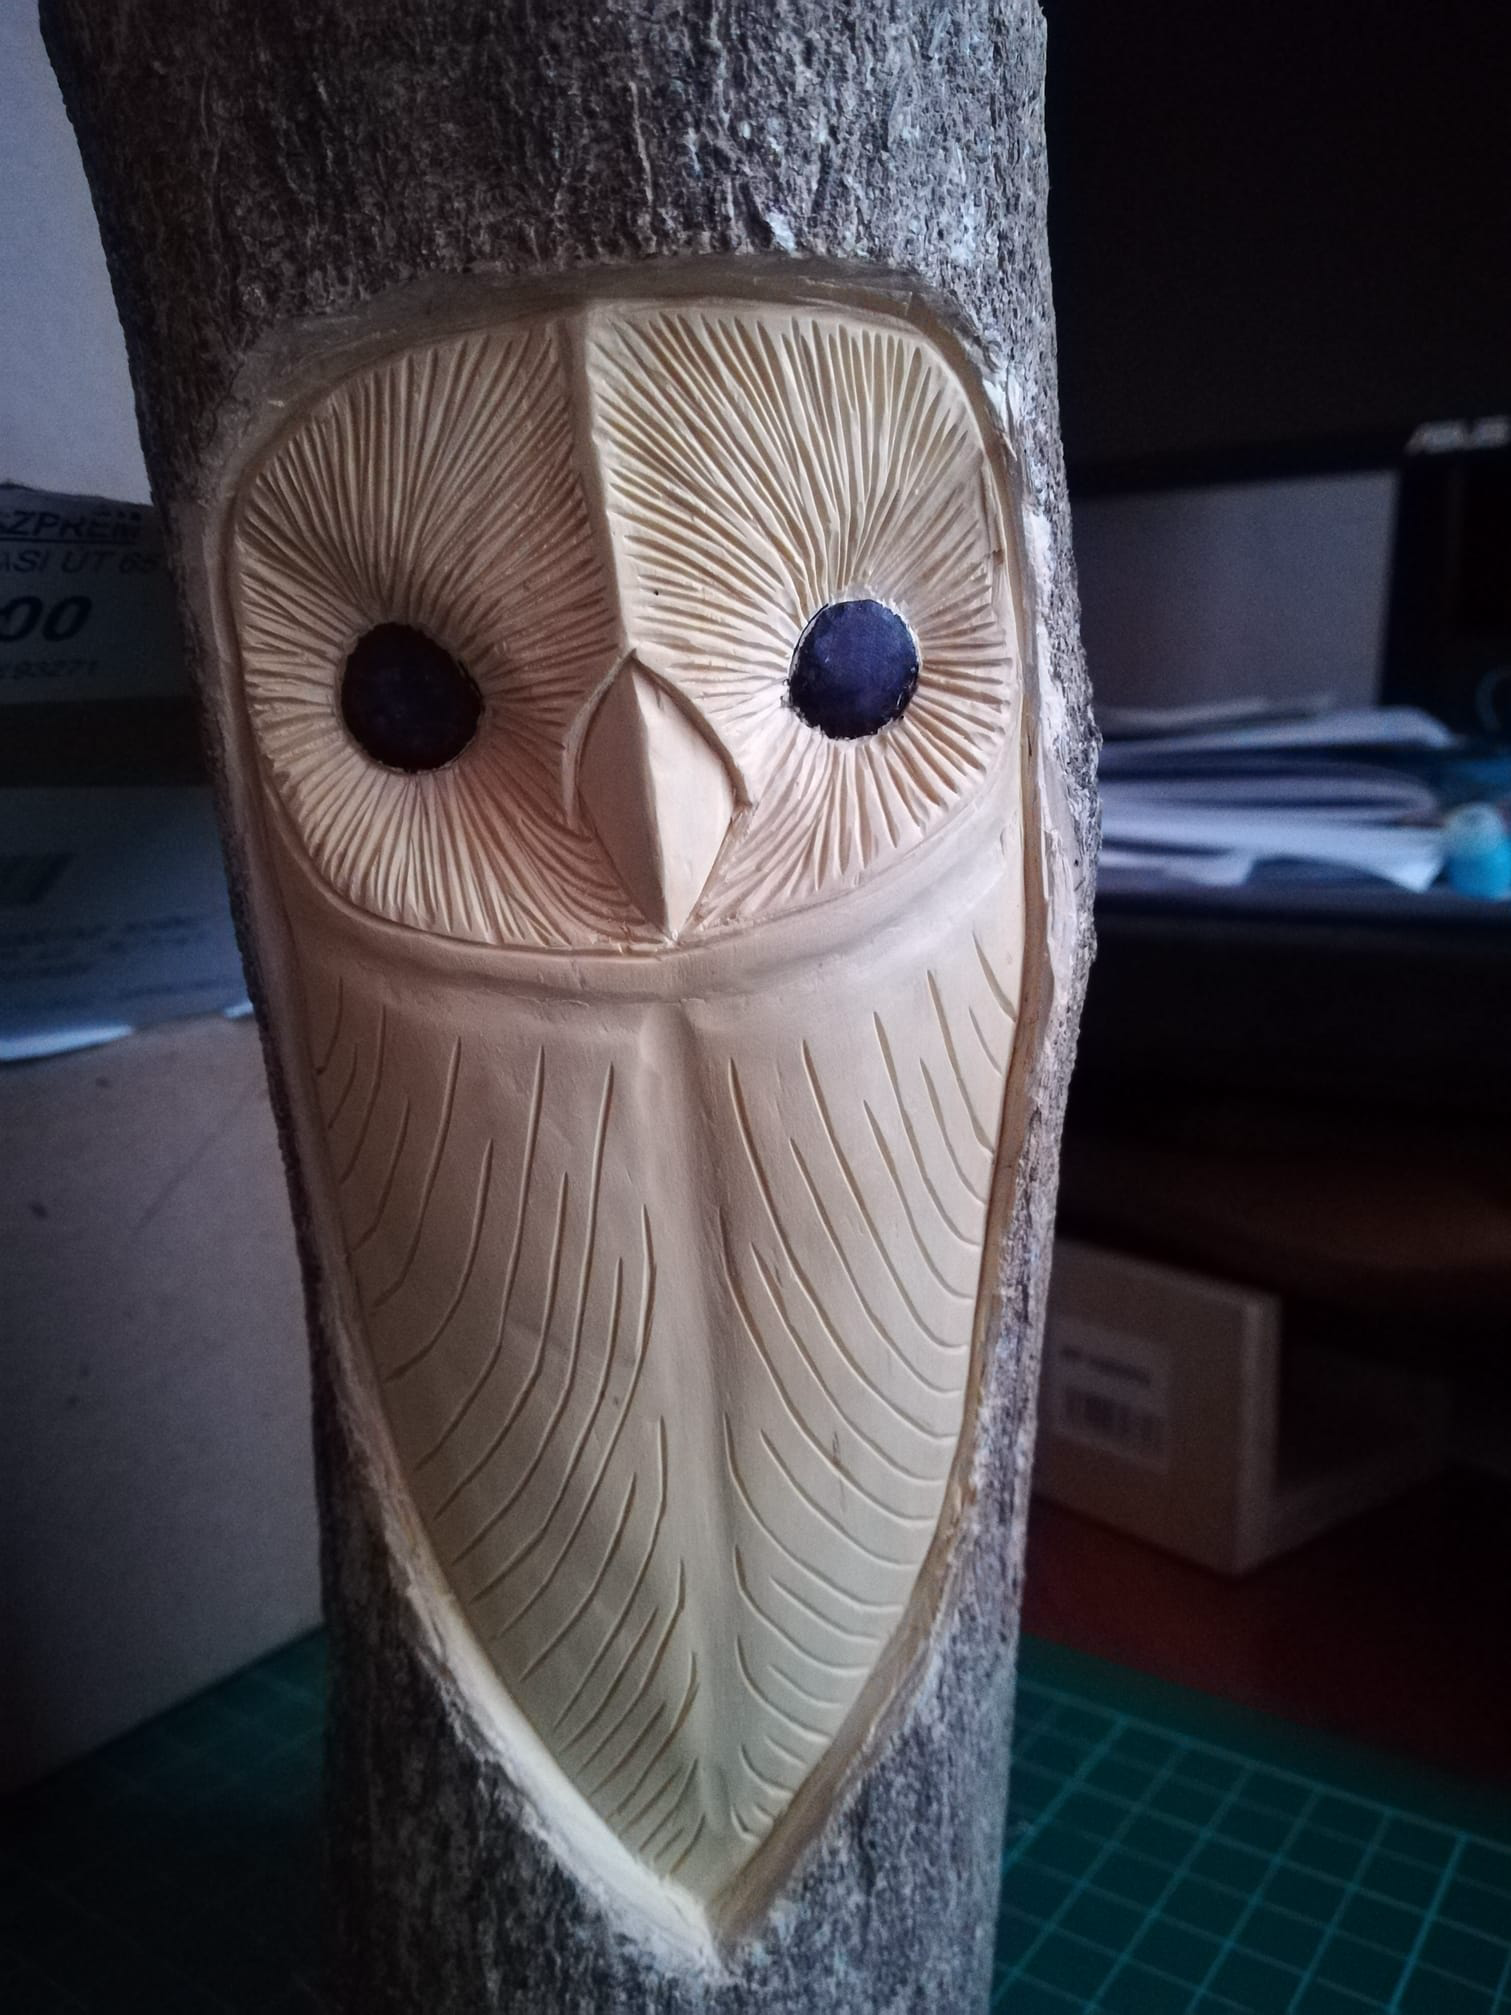 Woodspirit Woodcarvings By Ven Zsolt Holz Schnitzen Dremel Holzschnitzerei Holzschnitzerei